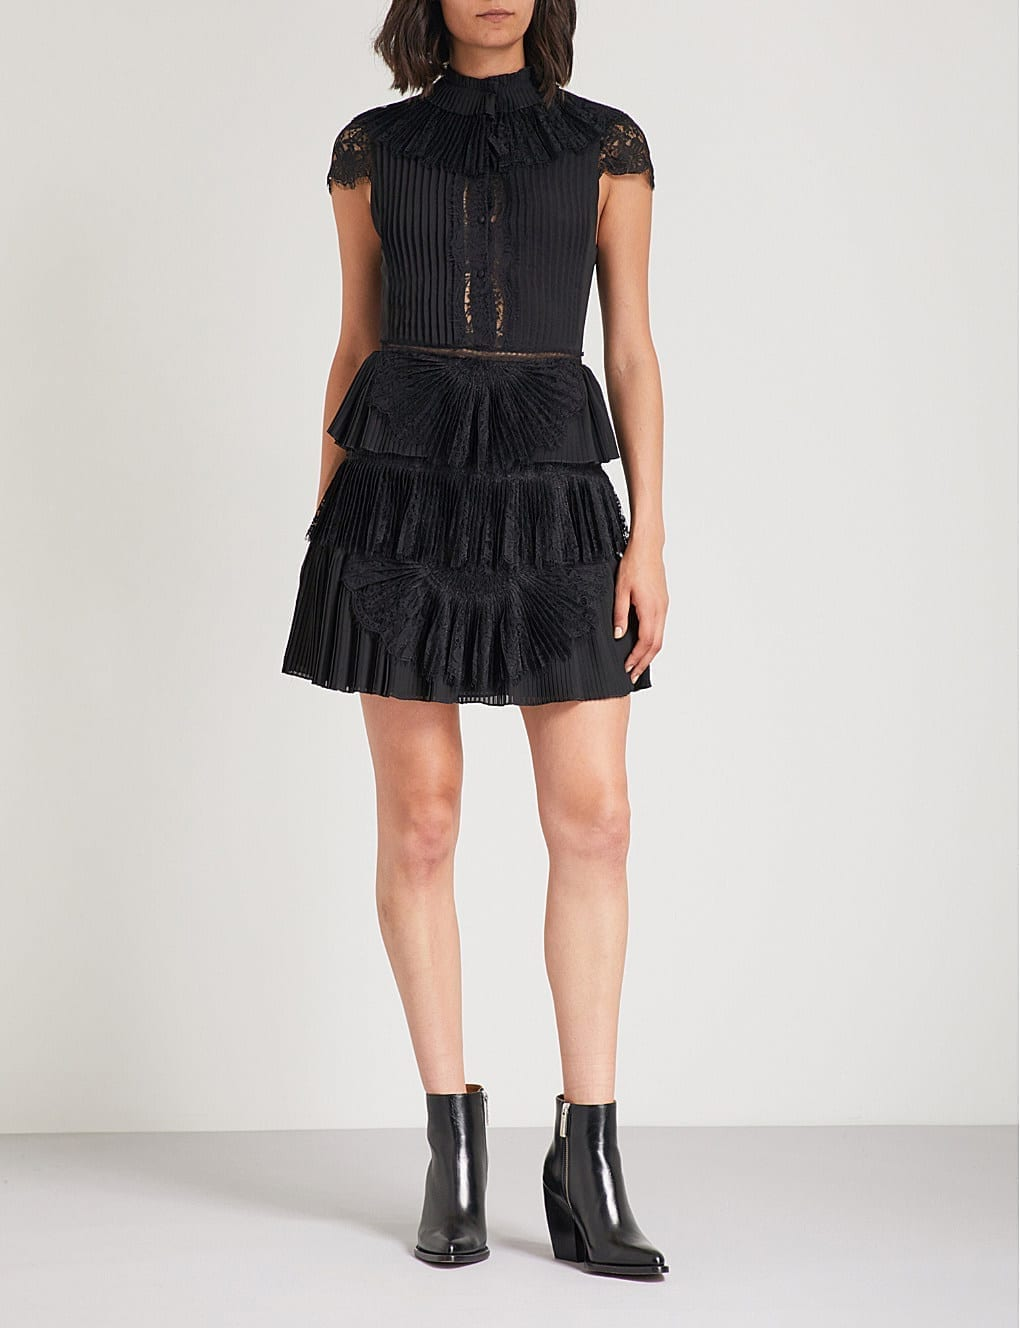 ALICE & OLIVIA Rosetta Lace-Panelled Pleated Chiffon Mini Black Dress